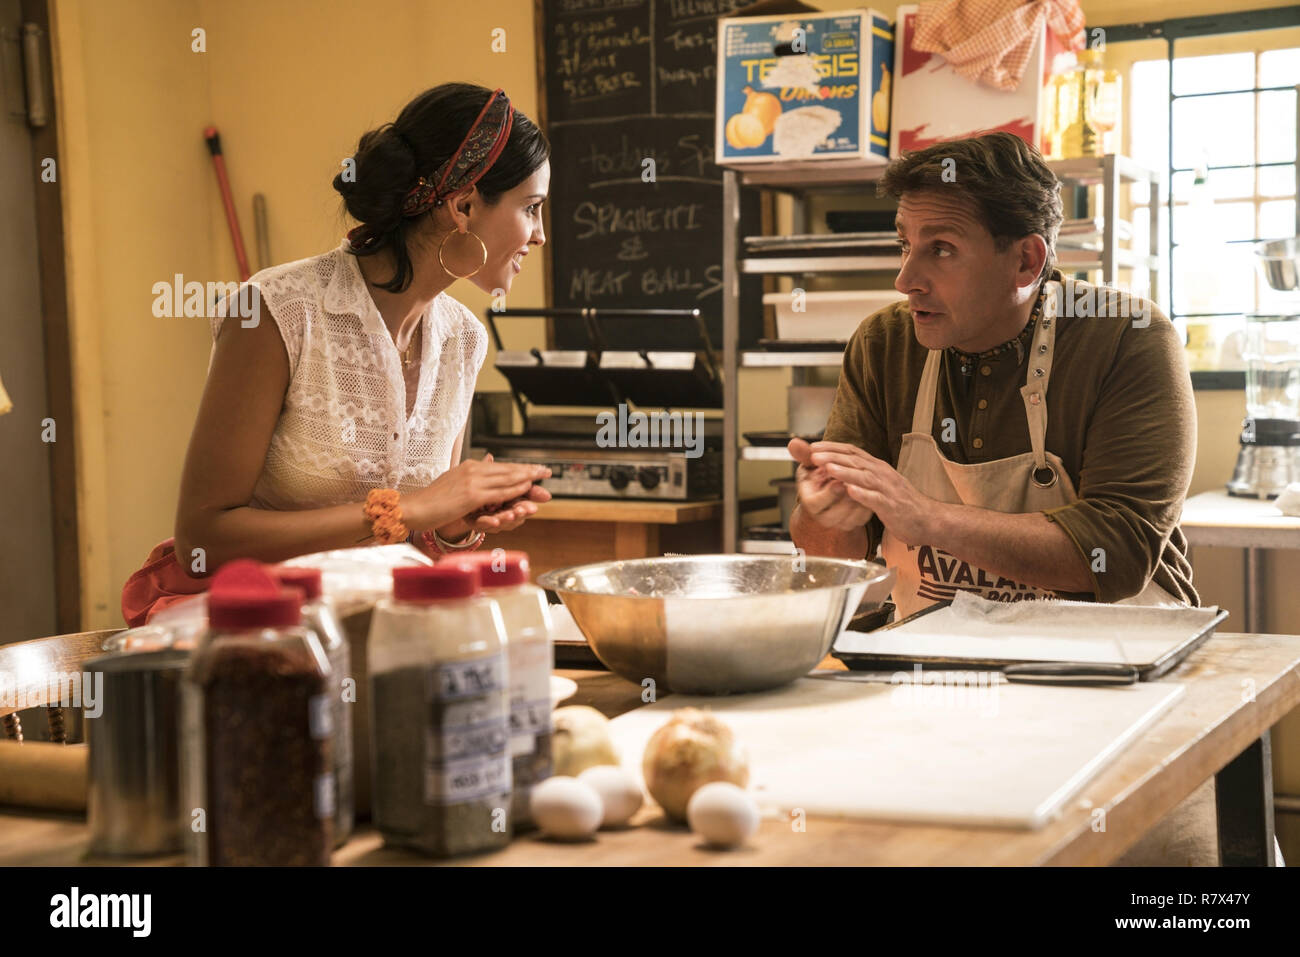 Eiza Gonzalez as Carlala, the supportive co-worker of Mark Hogancamp, played by Steve Carell, in 'Welcome to Marwen,' directed by Robert Zemeckis.  Photo Credit: Universal Pictures and Storyteller Distribution Co., LLC. / The Hollywood Archive - Stock Image